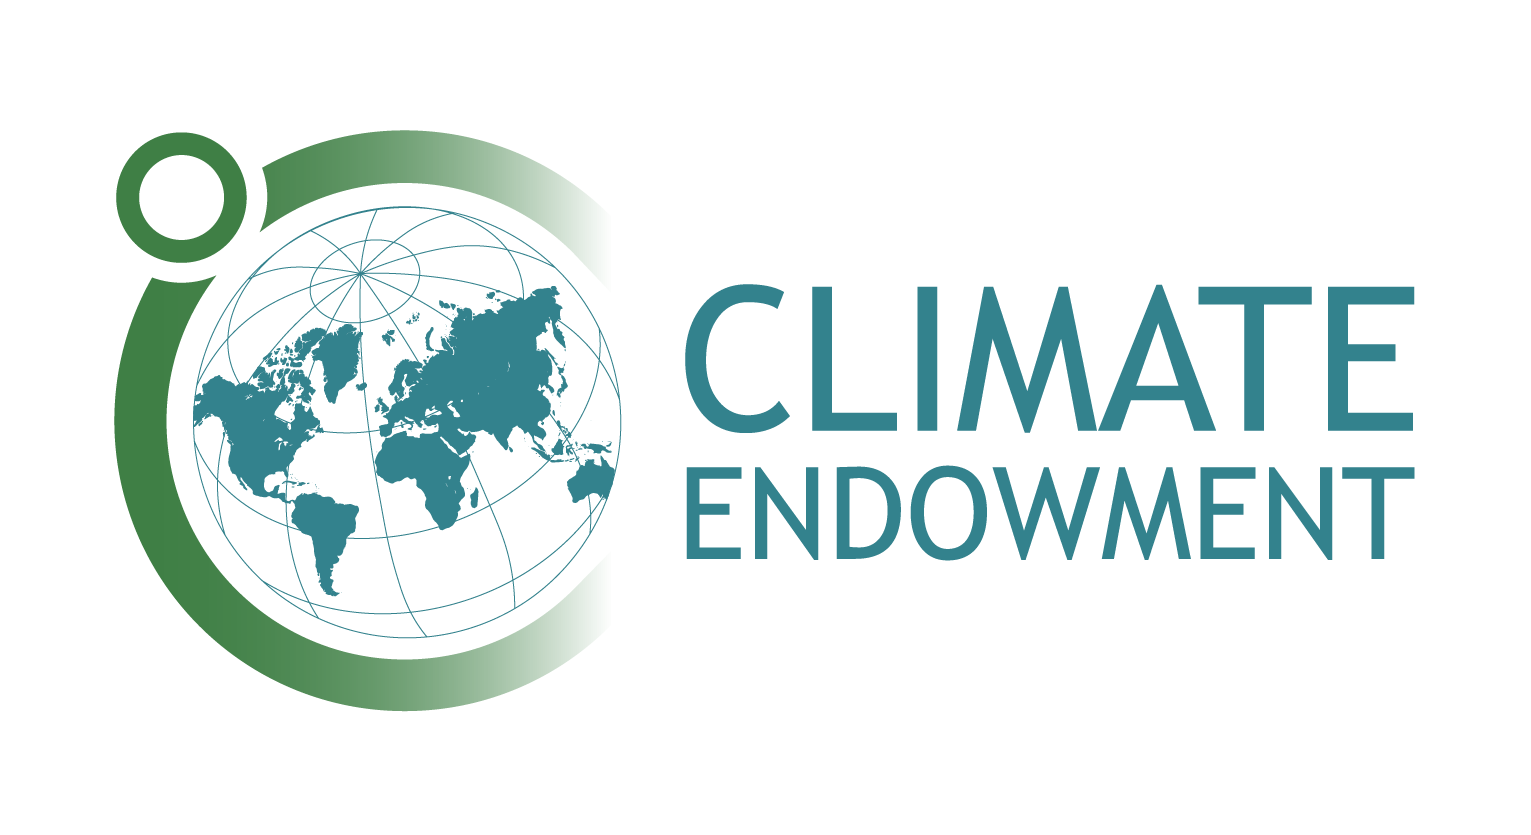 Climate Endowment